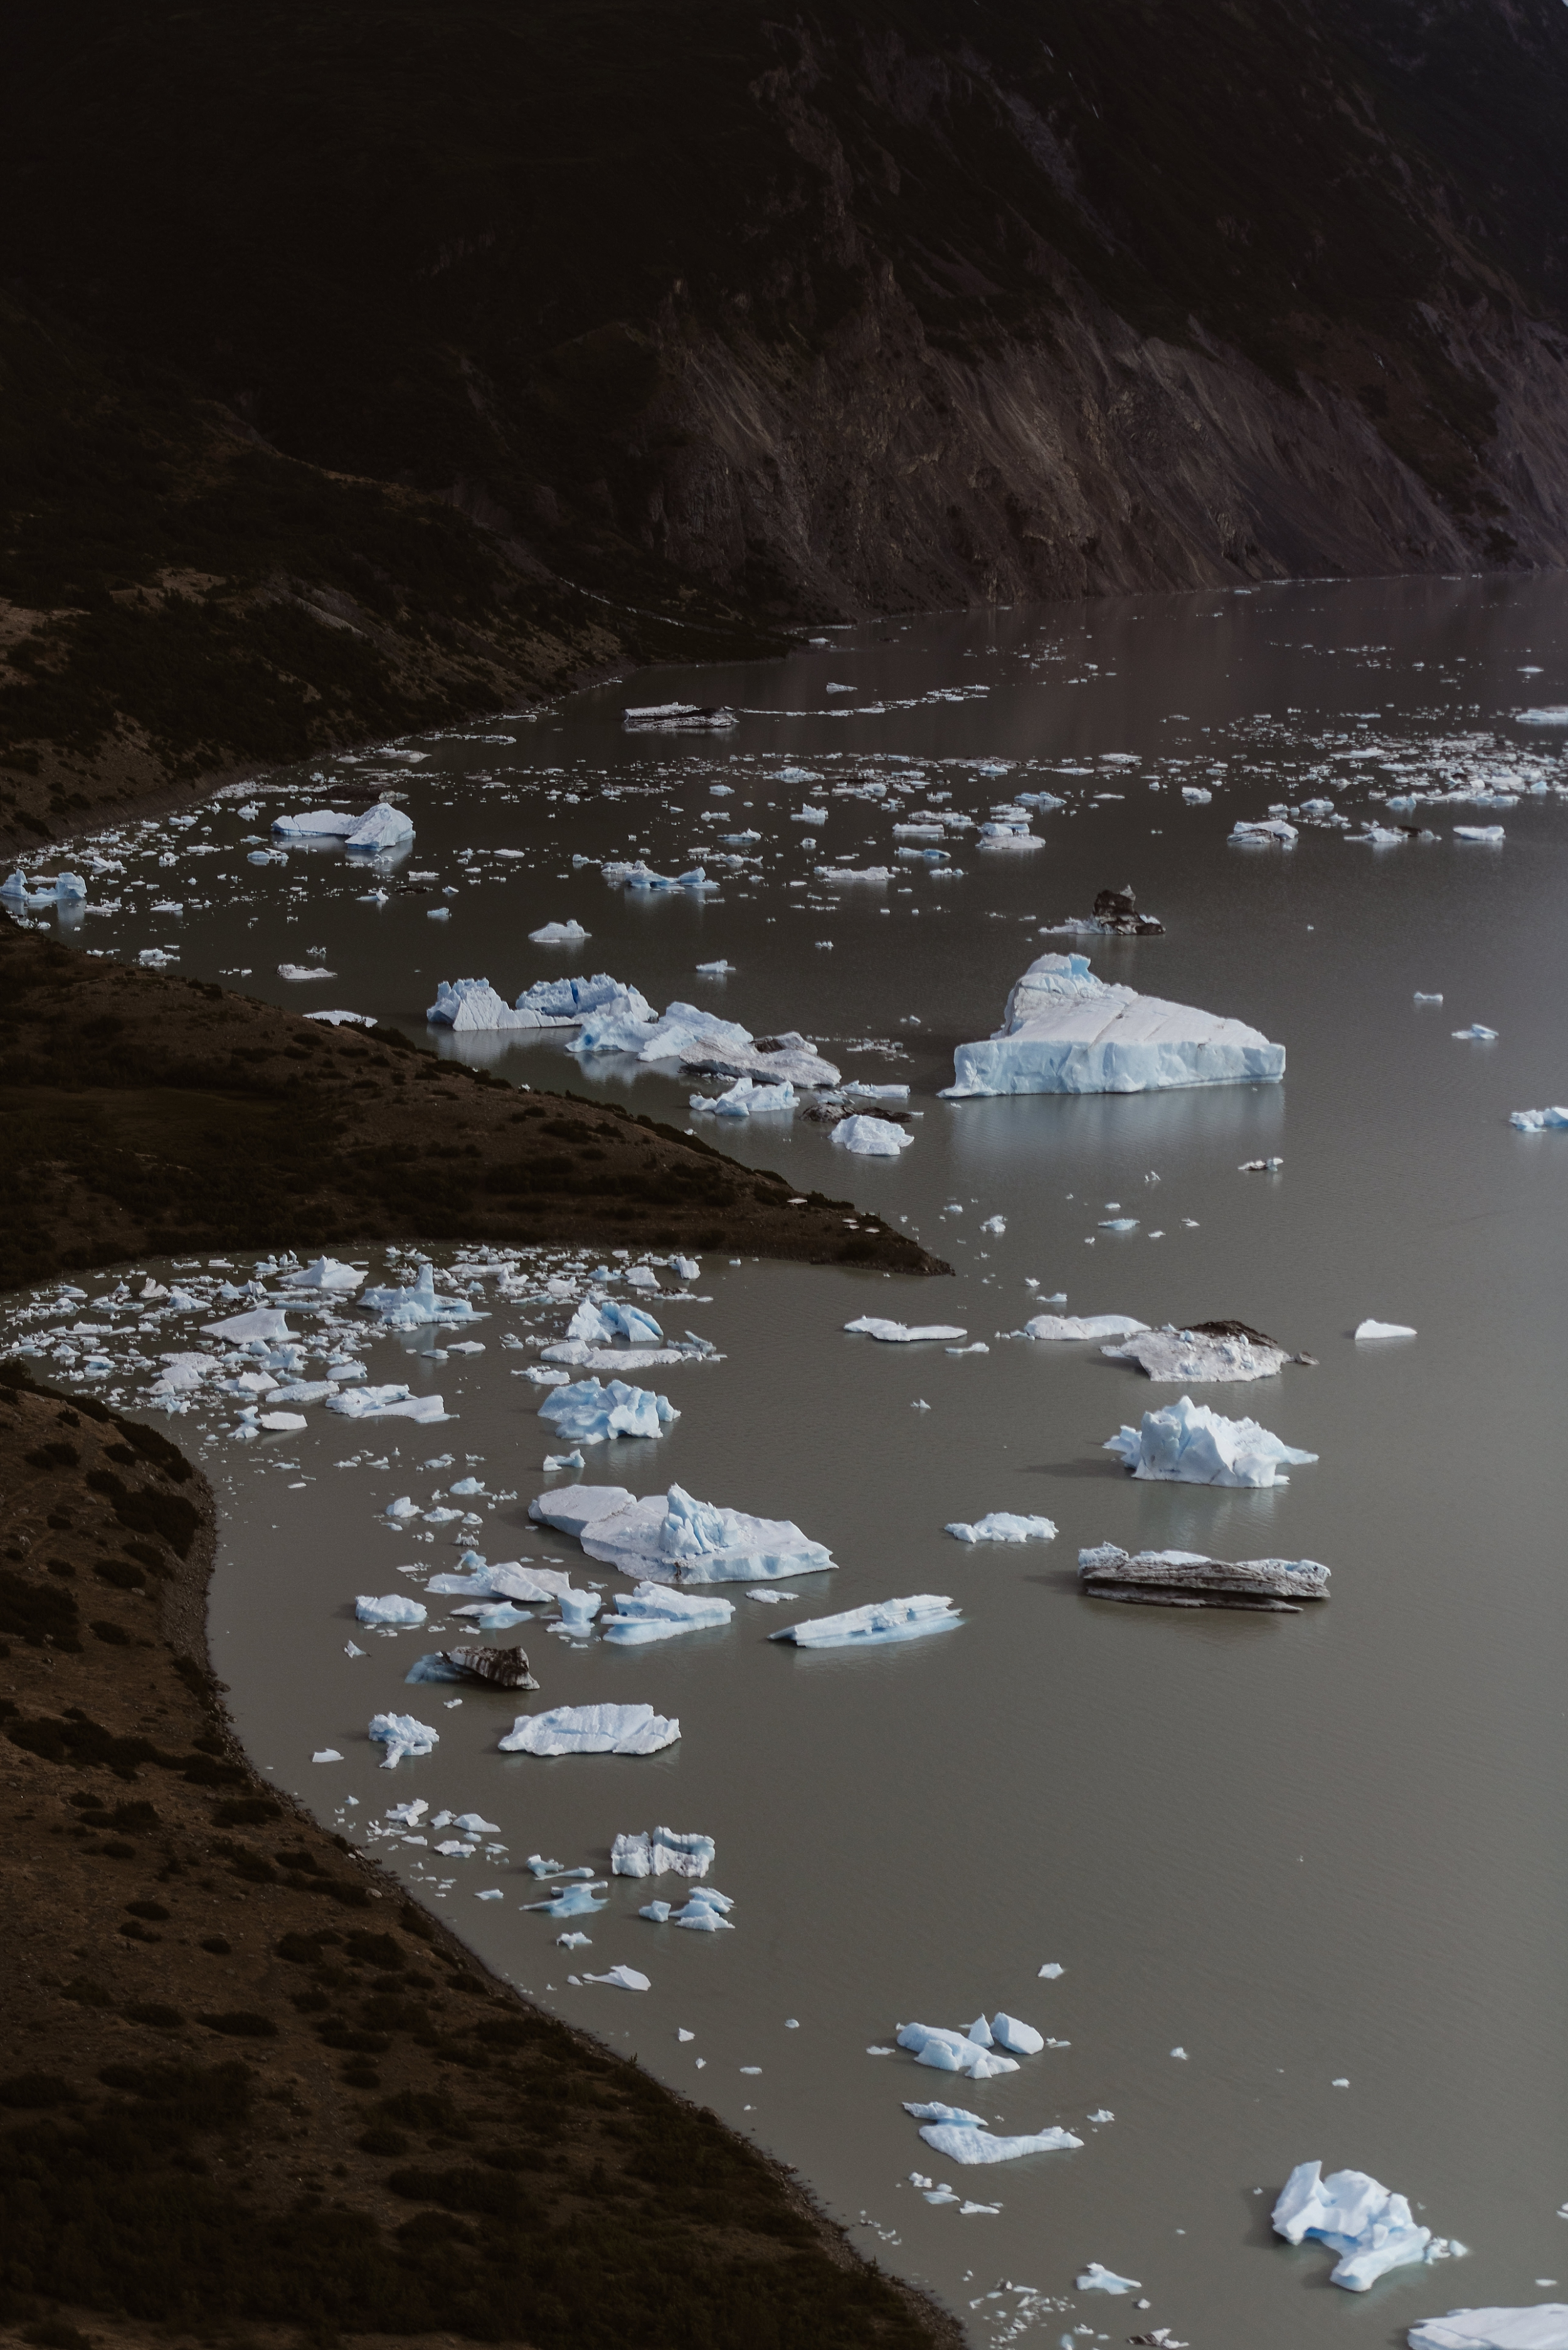 This image, captured by Adventure Instead, an Alaska wedding photographer, shows a birds-eye-view of a glacial lake with large chunks of ices floating within the lake. These features are all things that Jordyn and Connor wanted to see as part of their Alaska helicopter elopement.